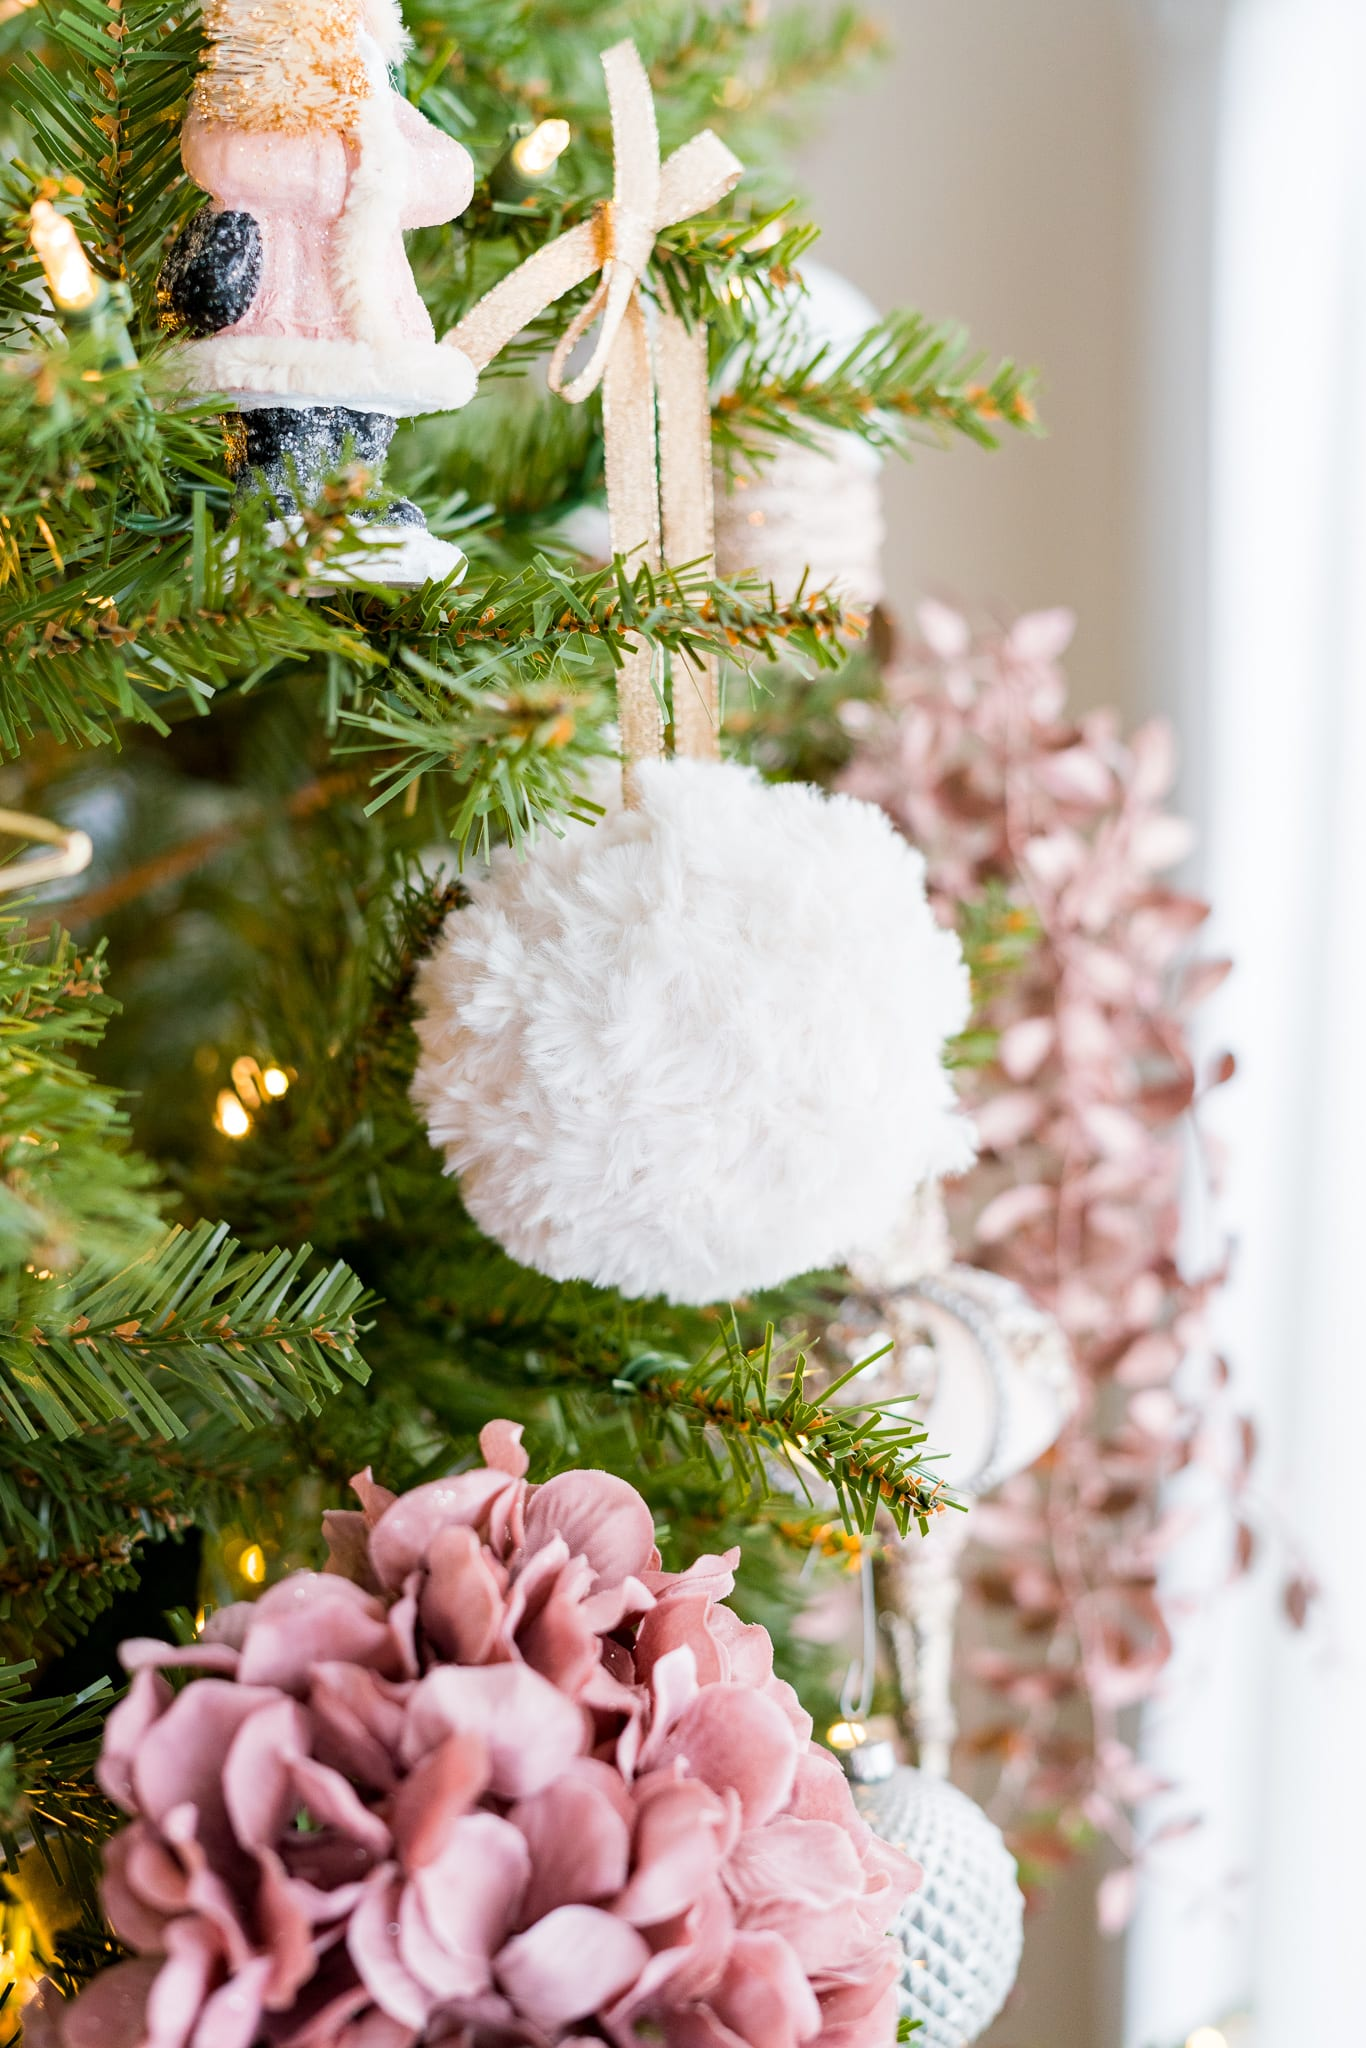 30 Easy Crochet Christmas Ornaments To Decorate Your Tree - DIY ... | 2048x1366